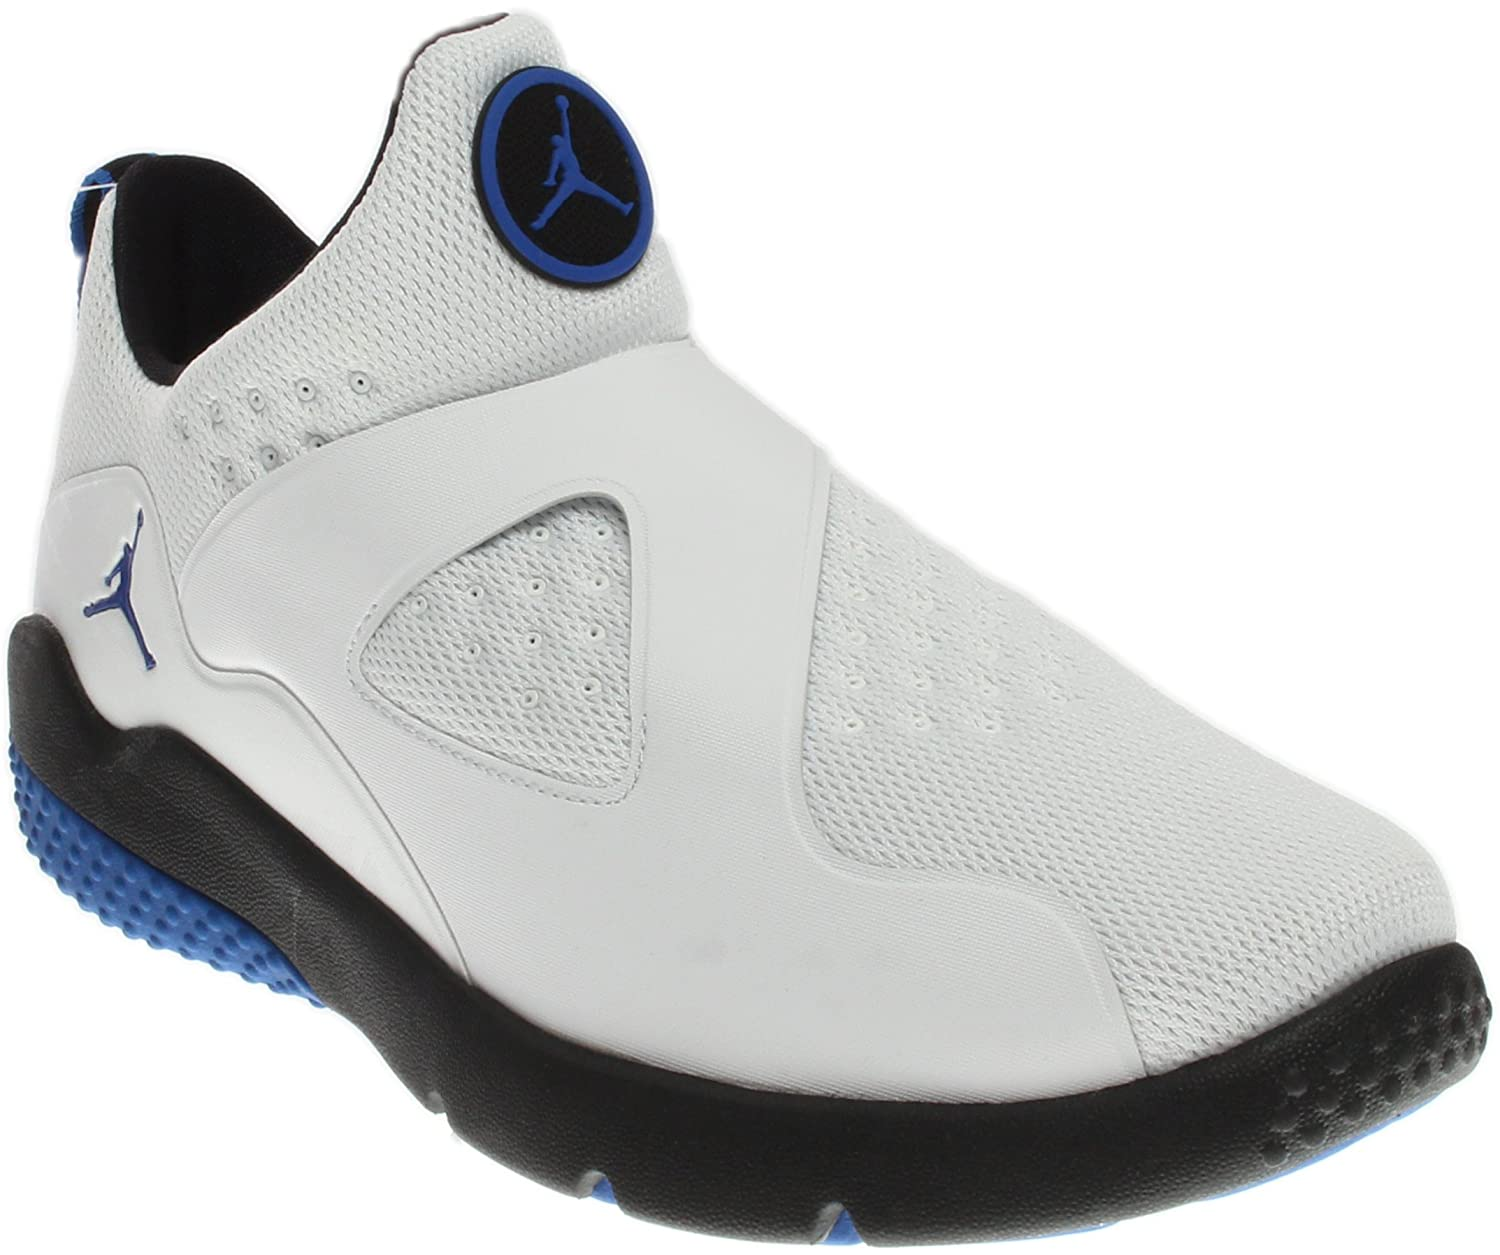 promo code bf070 193a8 Amazon.com   Jordan Trainer Essential Mens Shoes (11)   Fitness   Cross- Training